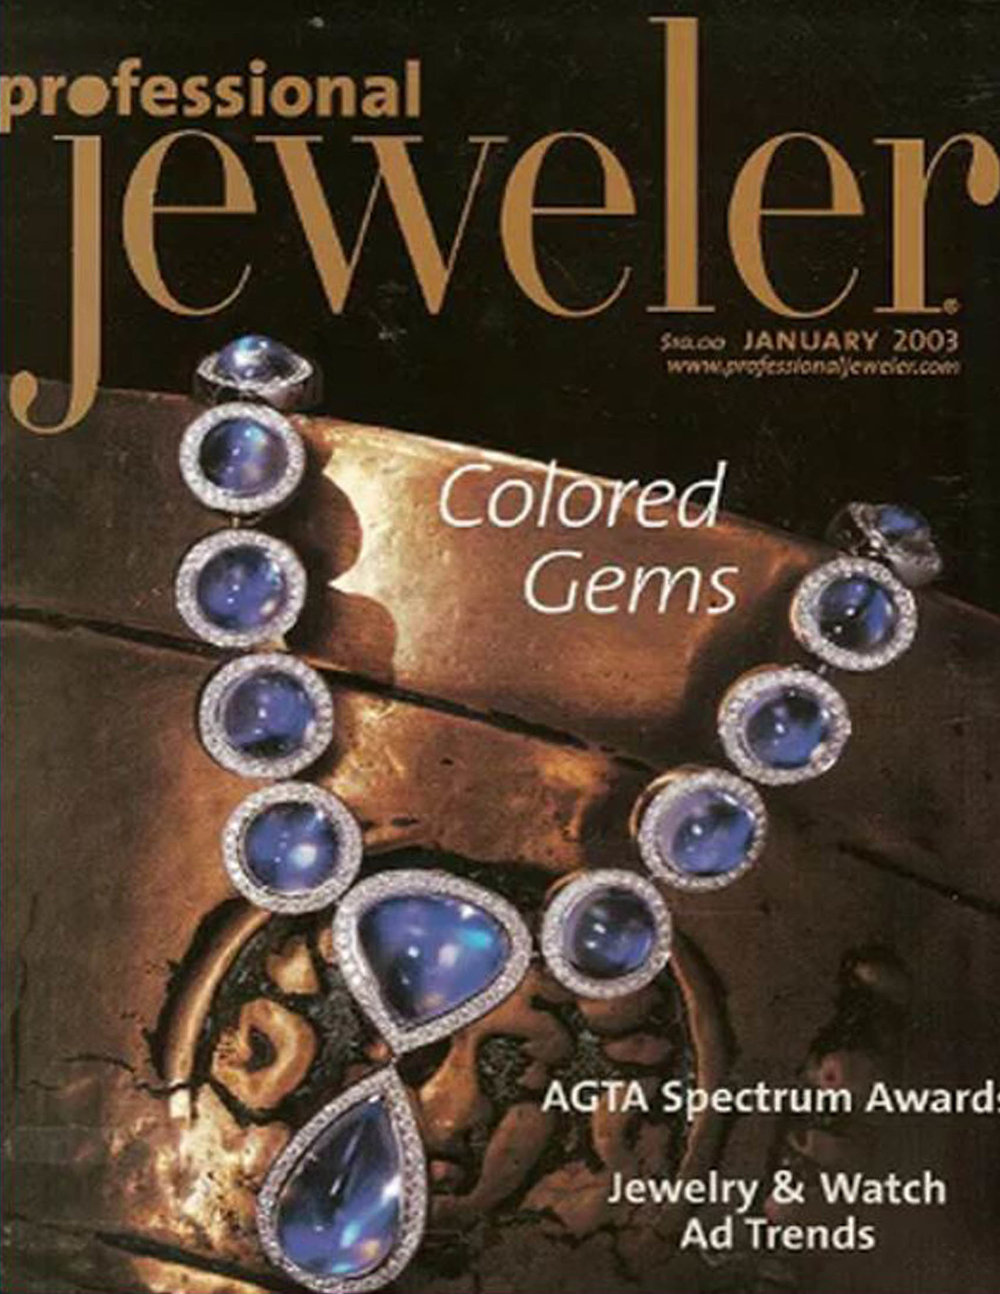 professional-jeweler-february-2001-web.jpg